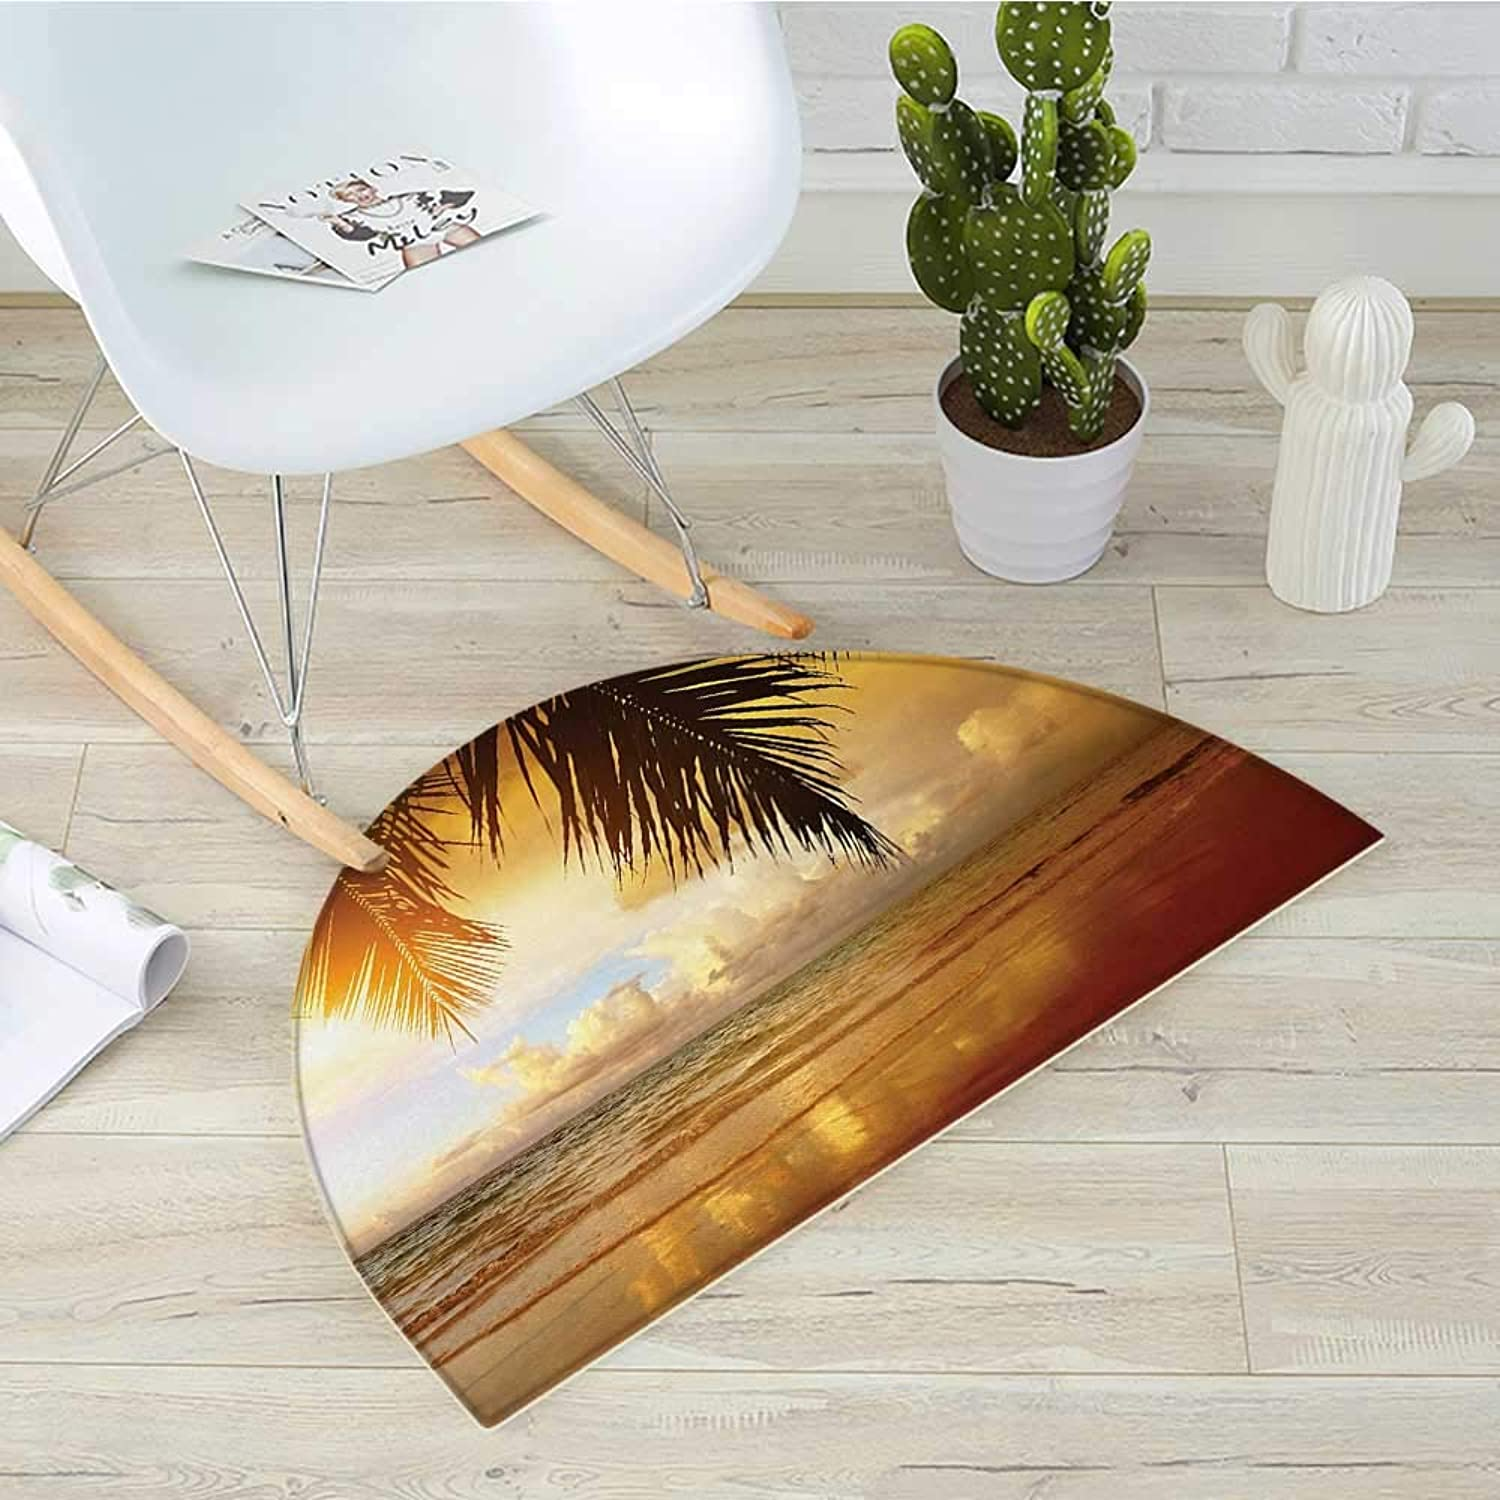 Ocean Semicircle Doormat Sunset on The Beach of Caribbean Sea Waves Coast with Palm Tree Halfmoon doormats H 39.3  xD 59  Yellow Dark orange Baby bluee